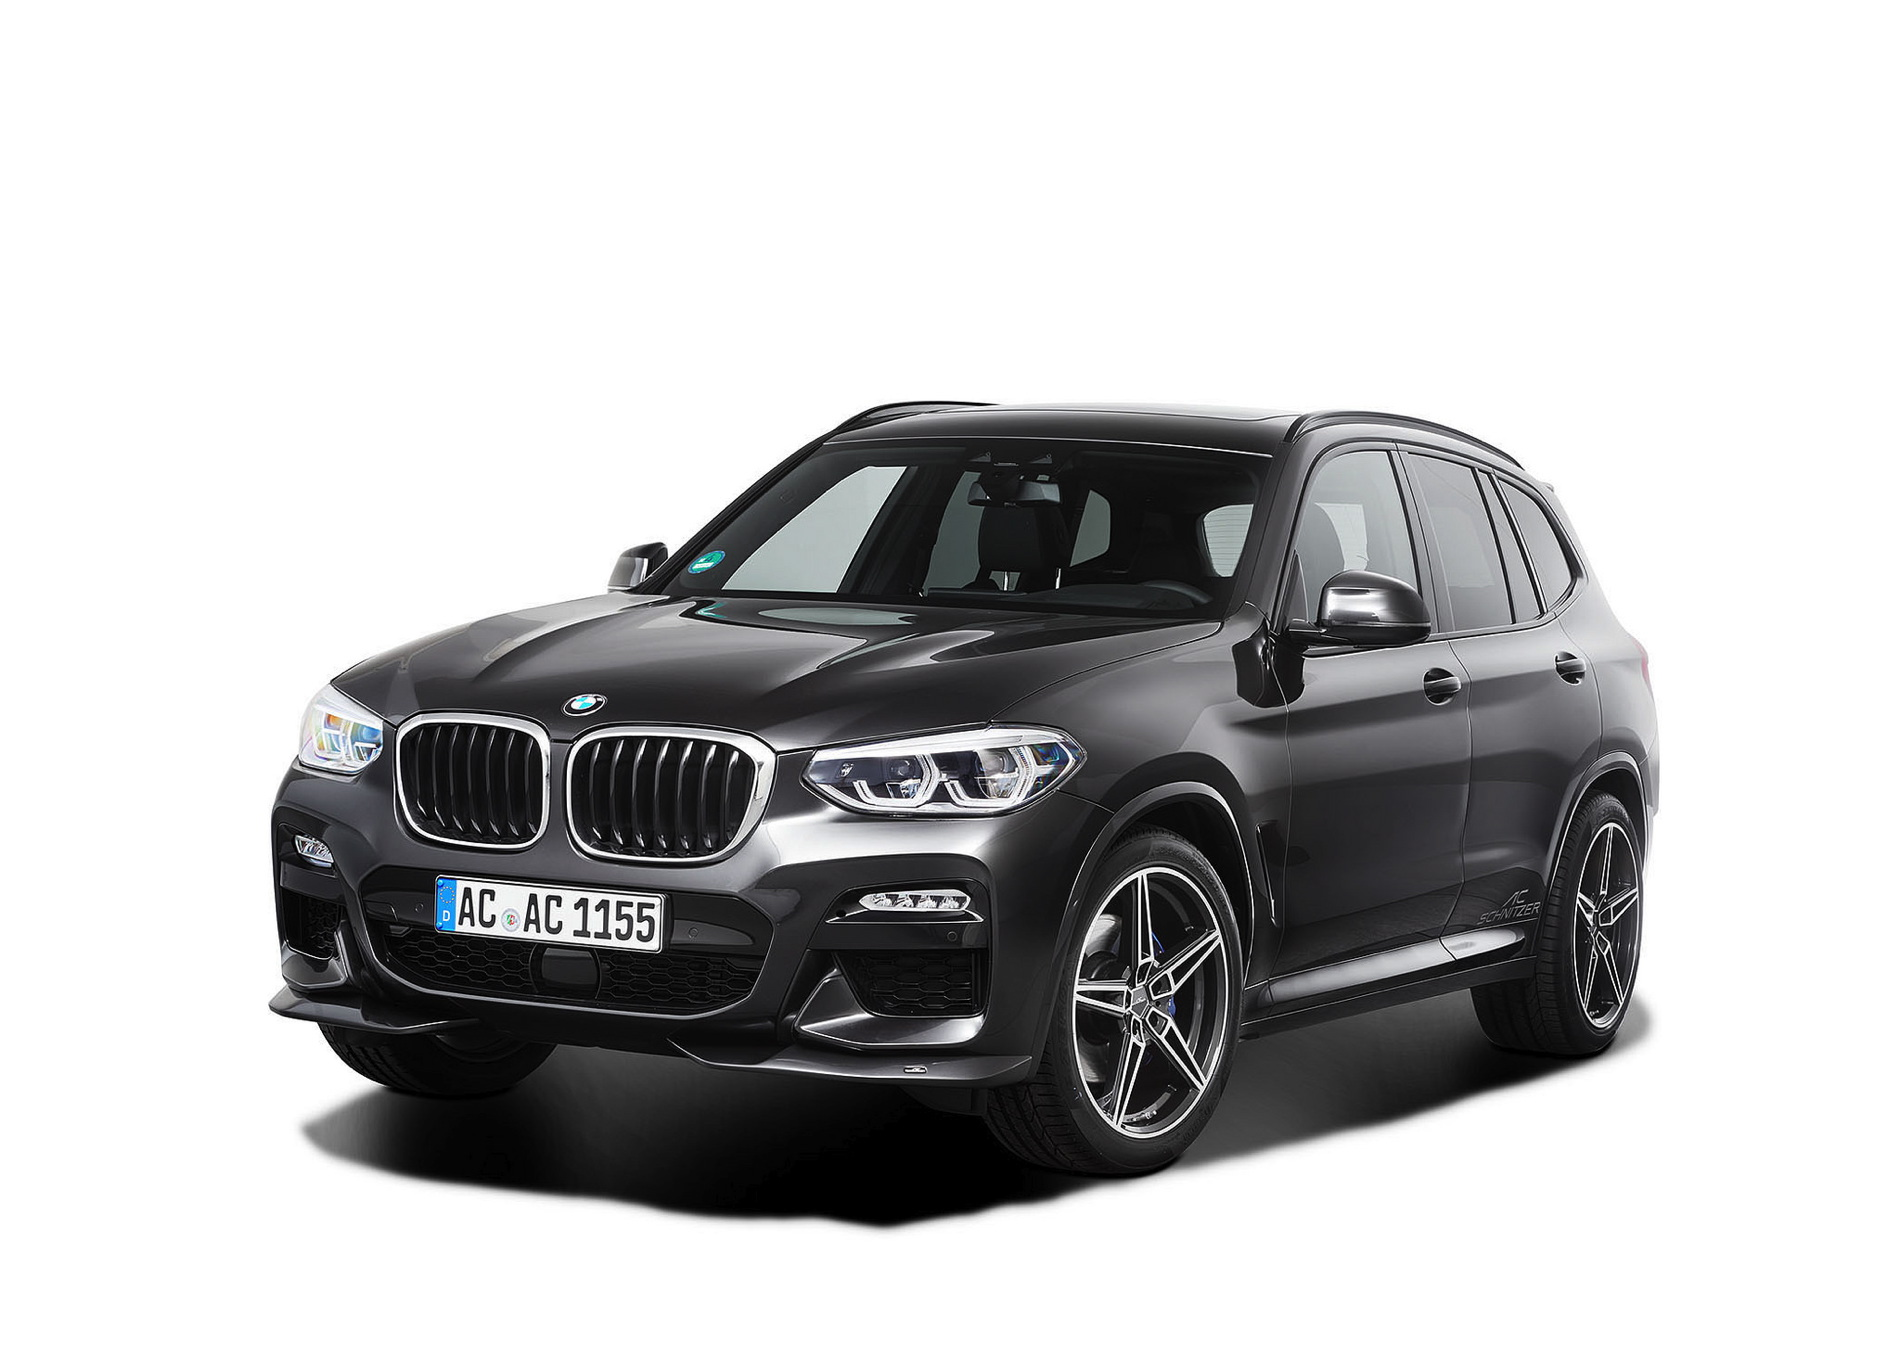 Ac Schnitzer Give New Bmw X3 More Power And Meaner Looks